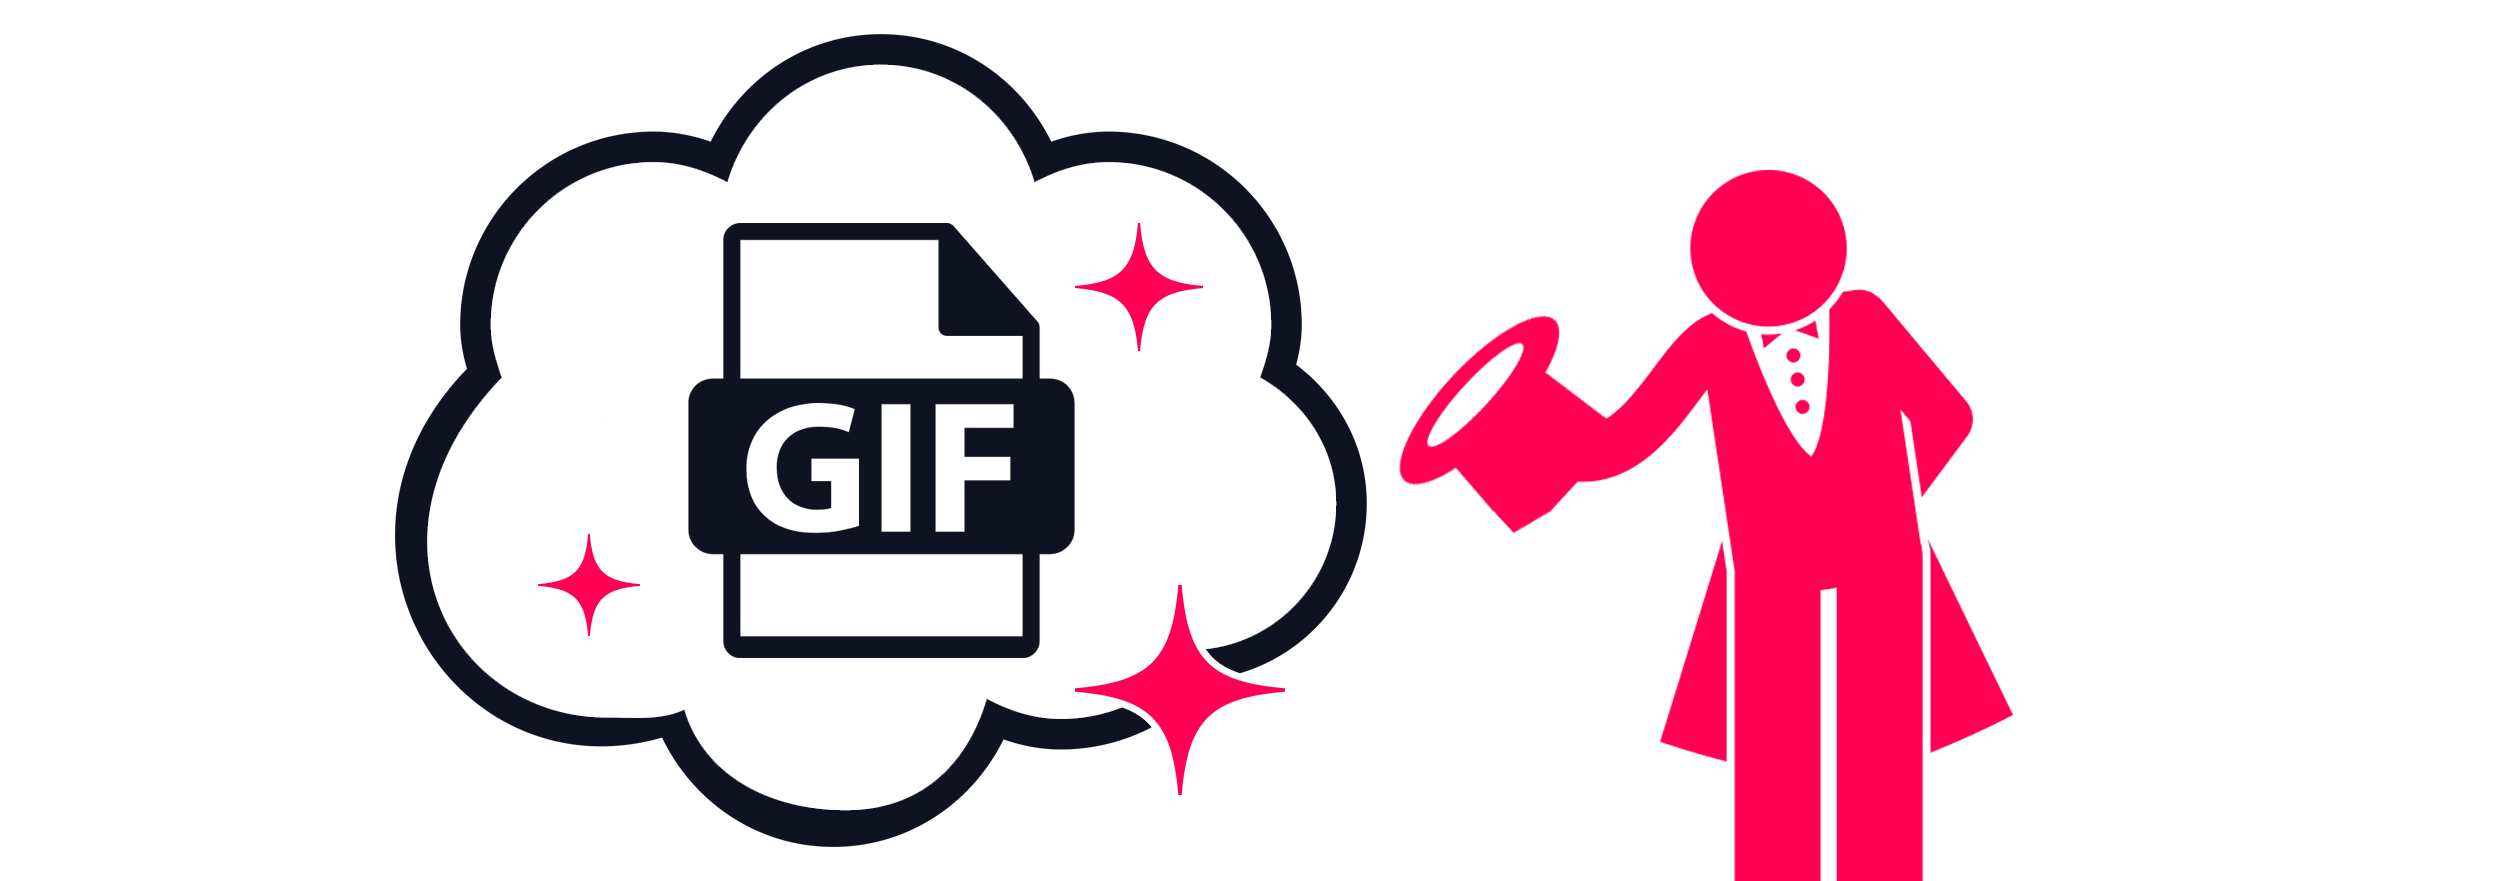 add effects to GIF